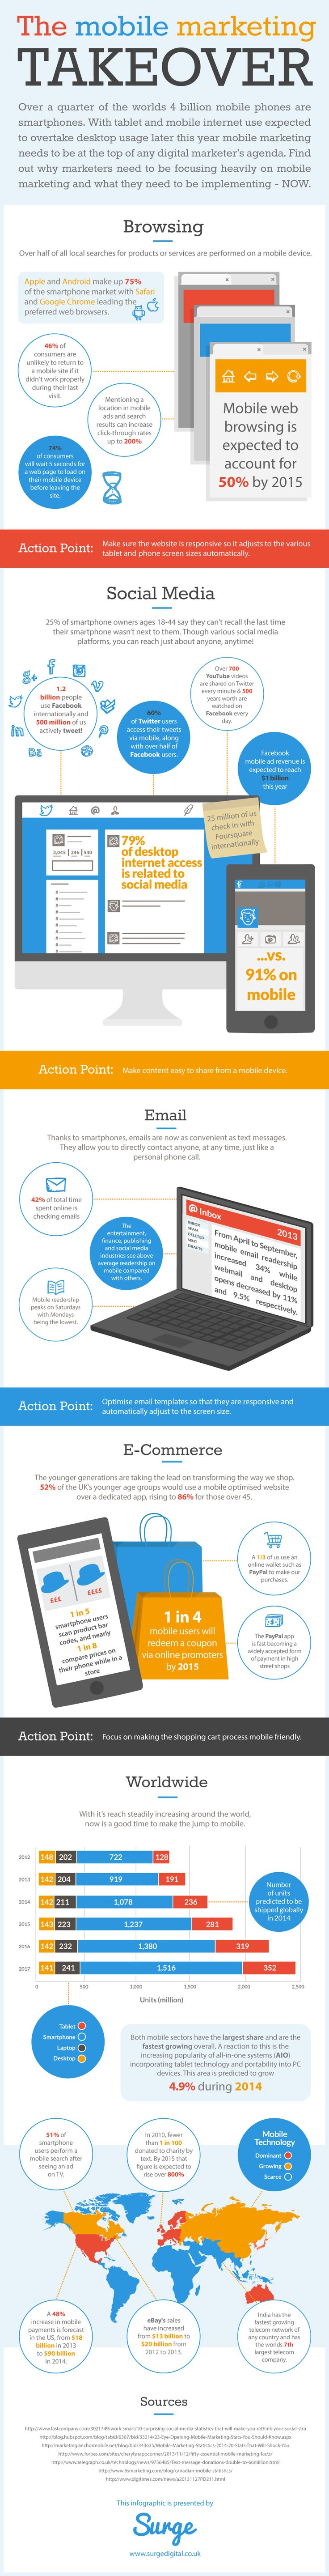 The Mobile Marketing Takeover #infographic  #mCommerce #Marketing #MobileMarket #eCommerce #infografía